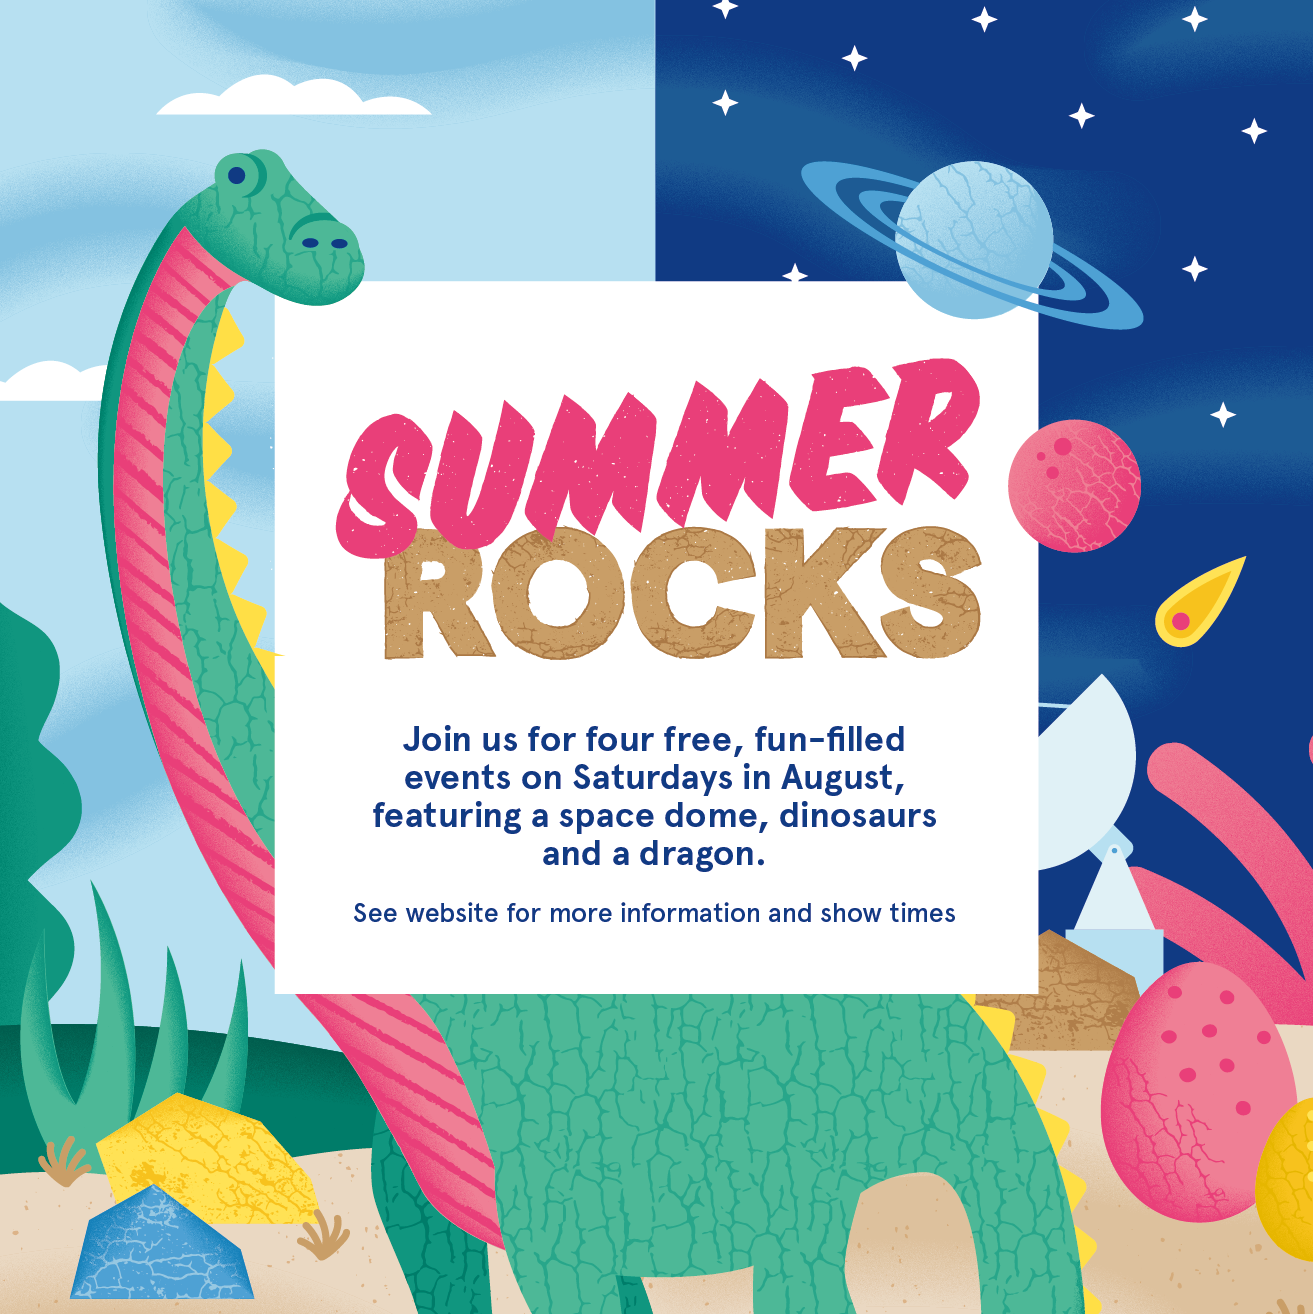 Free 'Summer Rocks' fun for the family